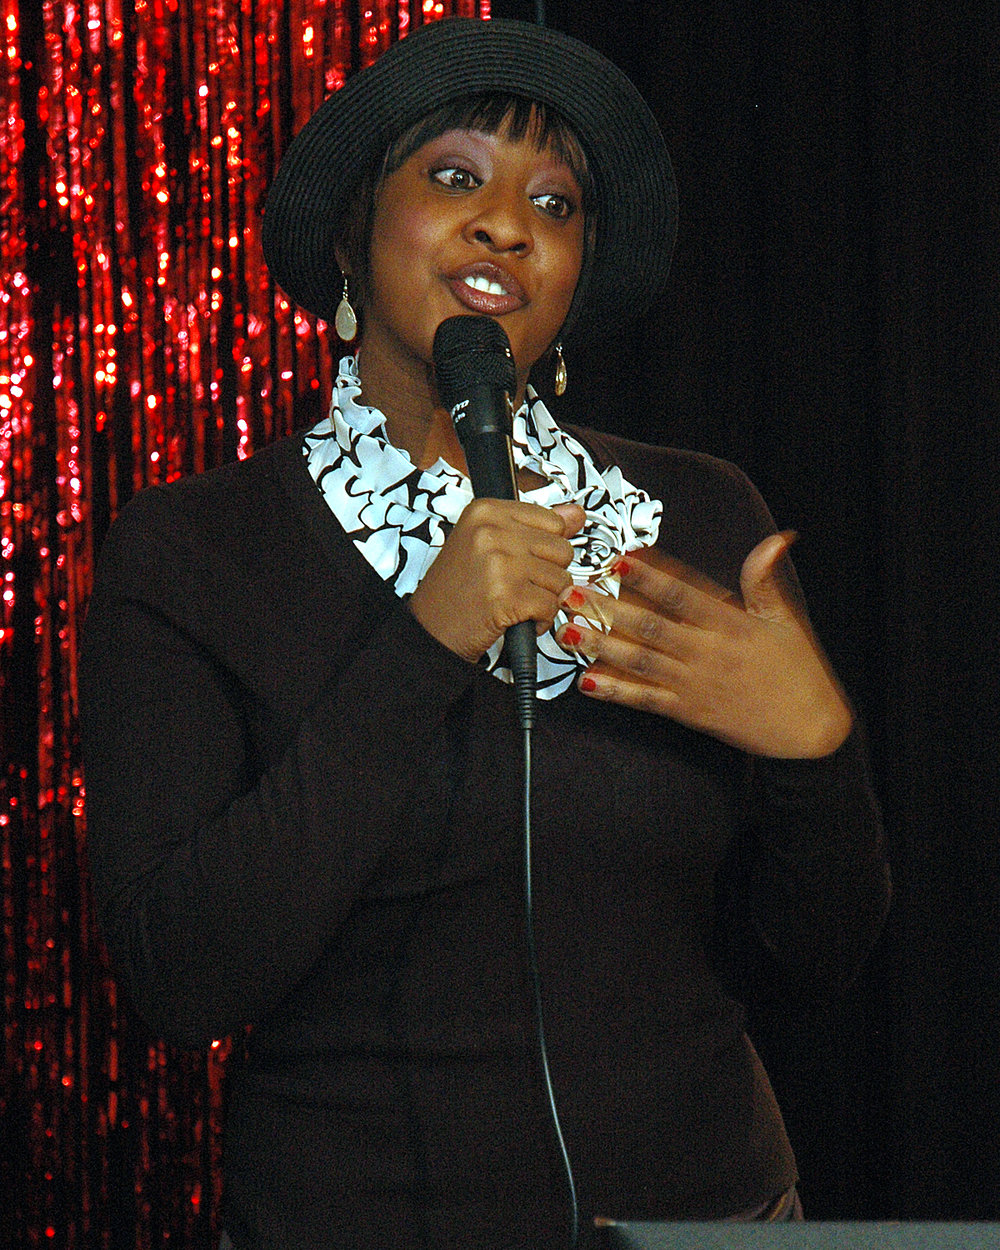 Ebony Ross during the testimonial to Brenda Starks-Ross